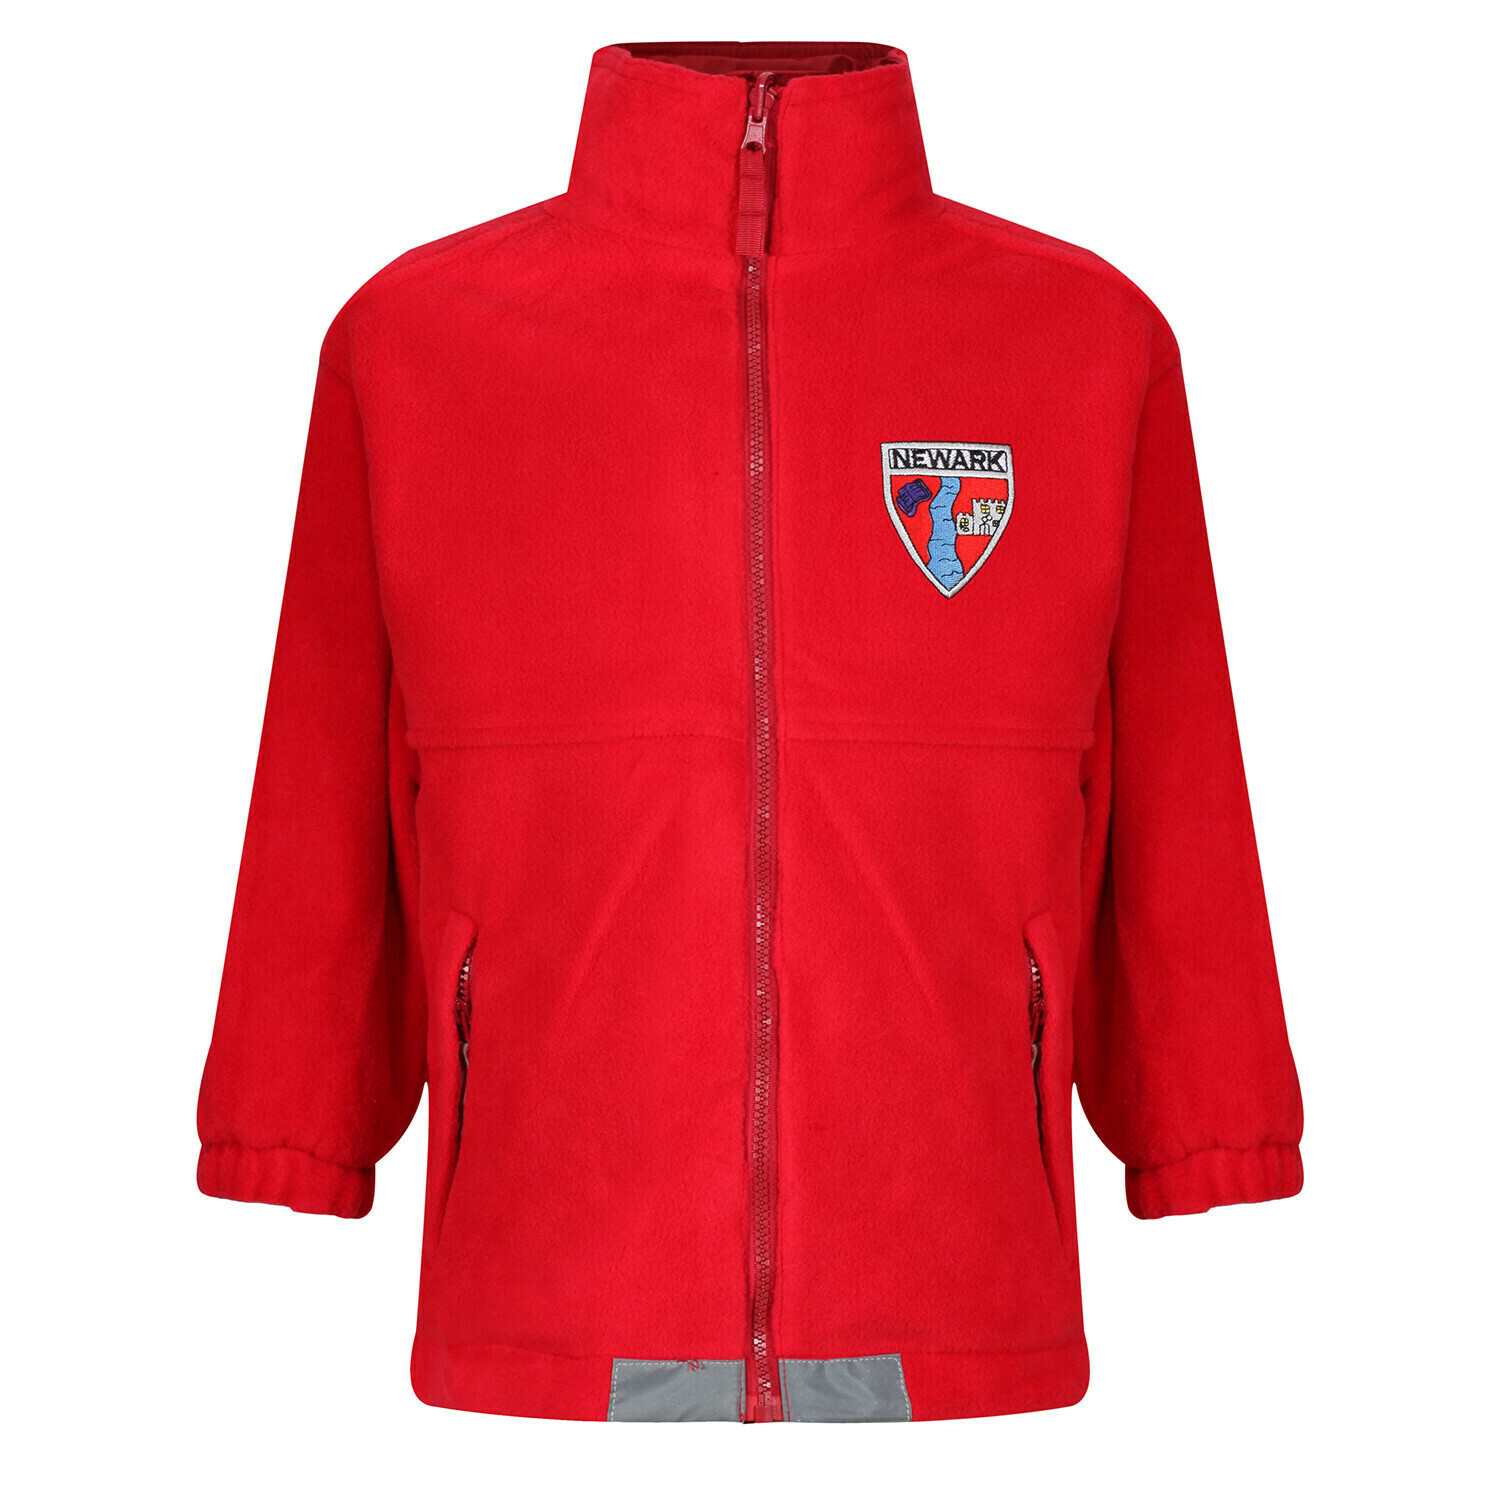 Newark Primary Staff Fleece (Unisex) (RCSRS36)